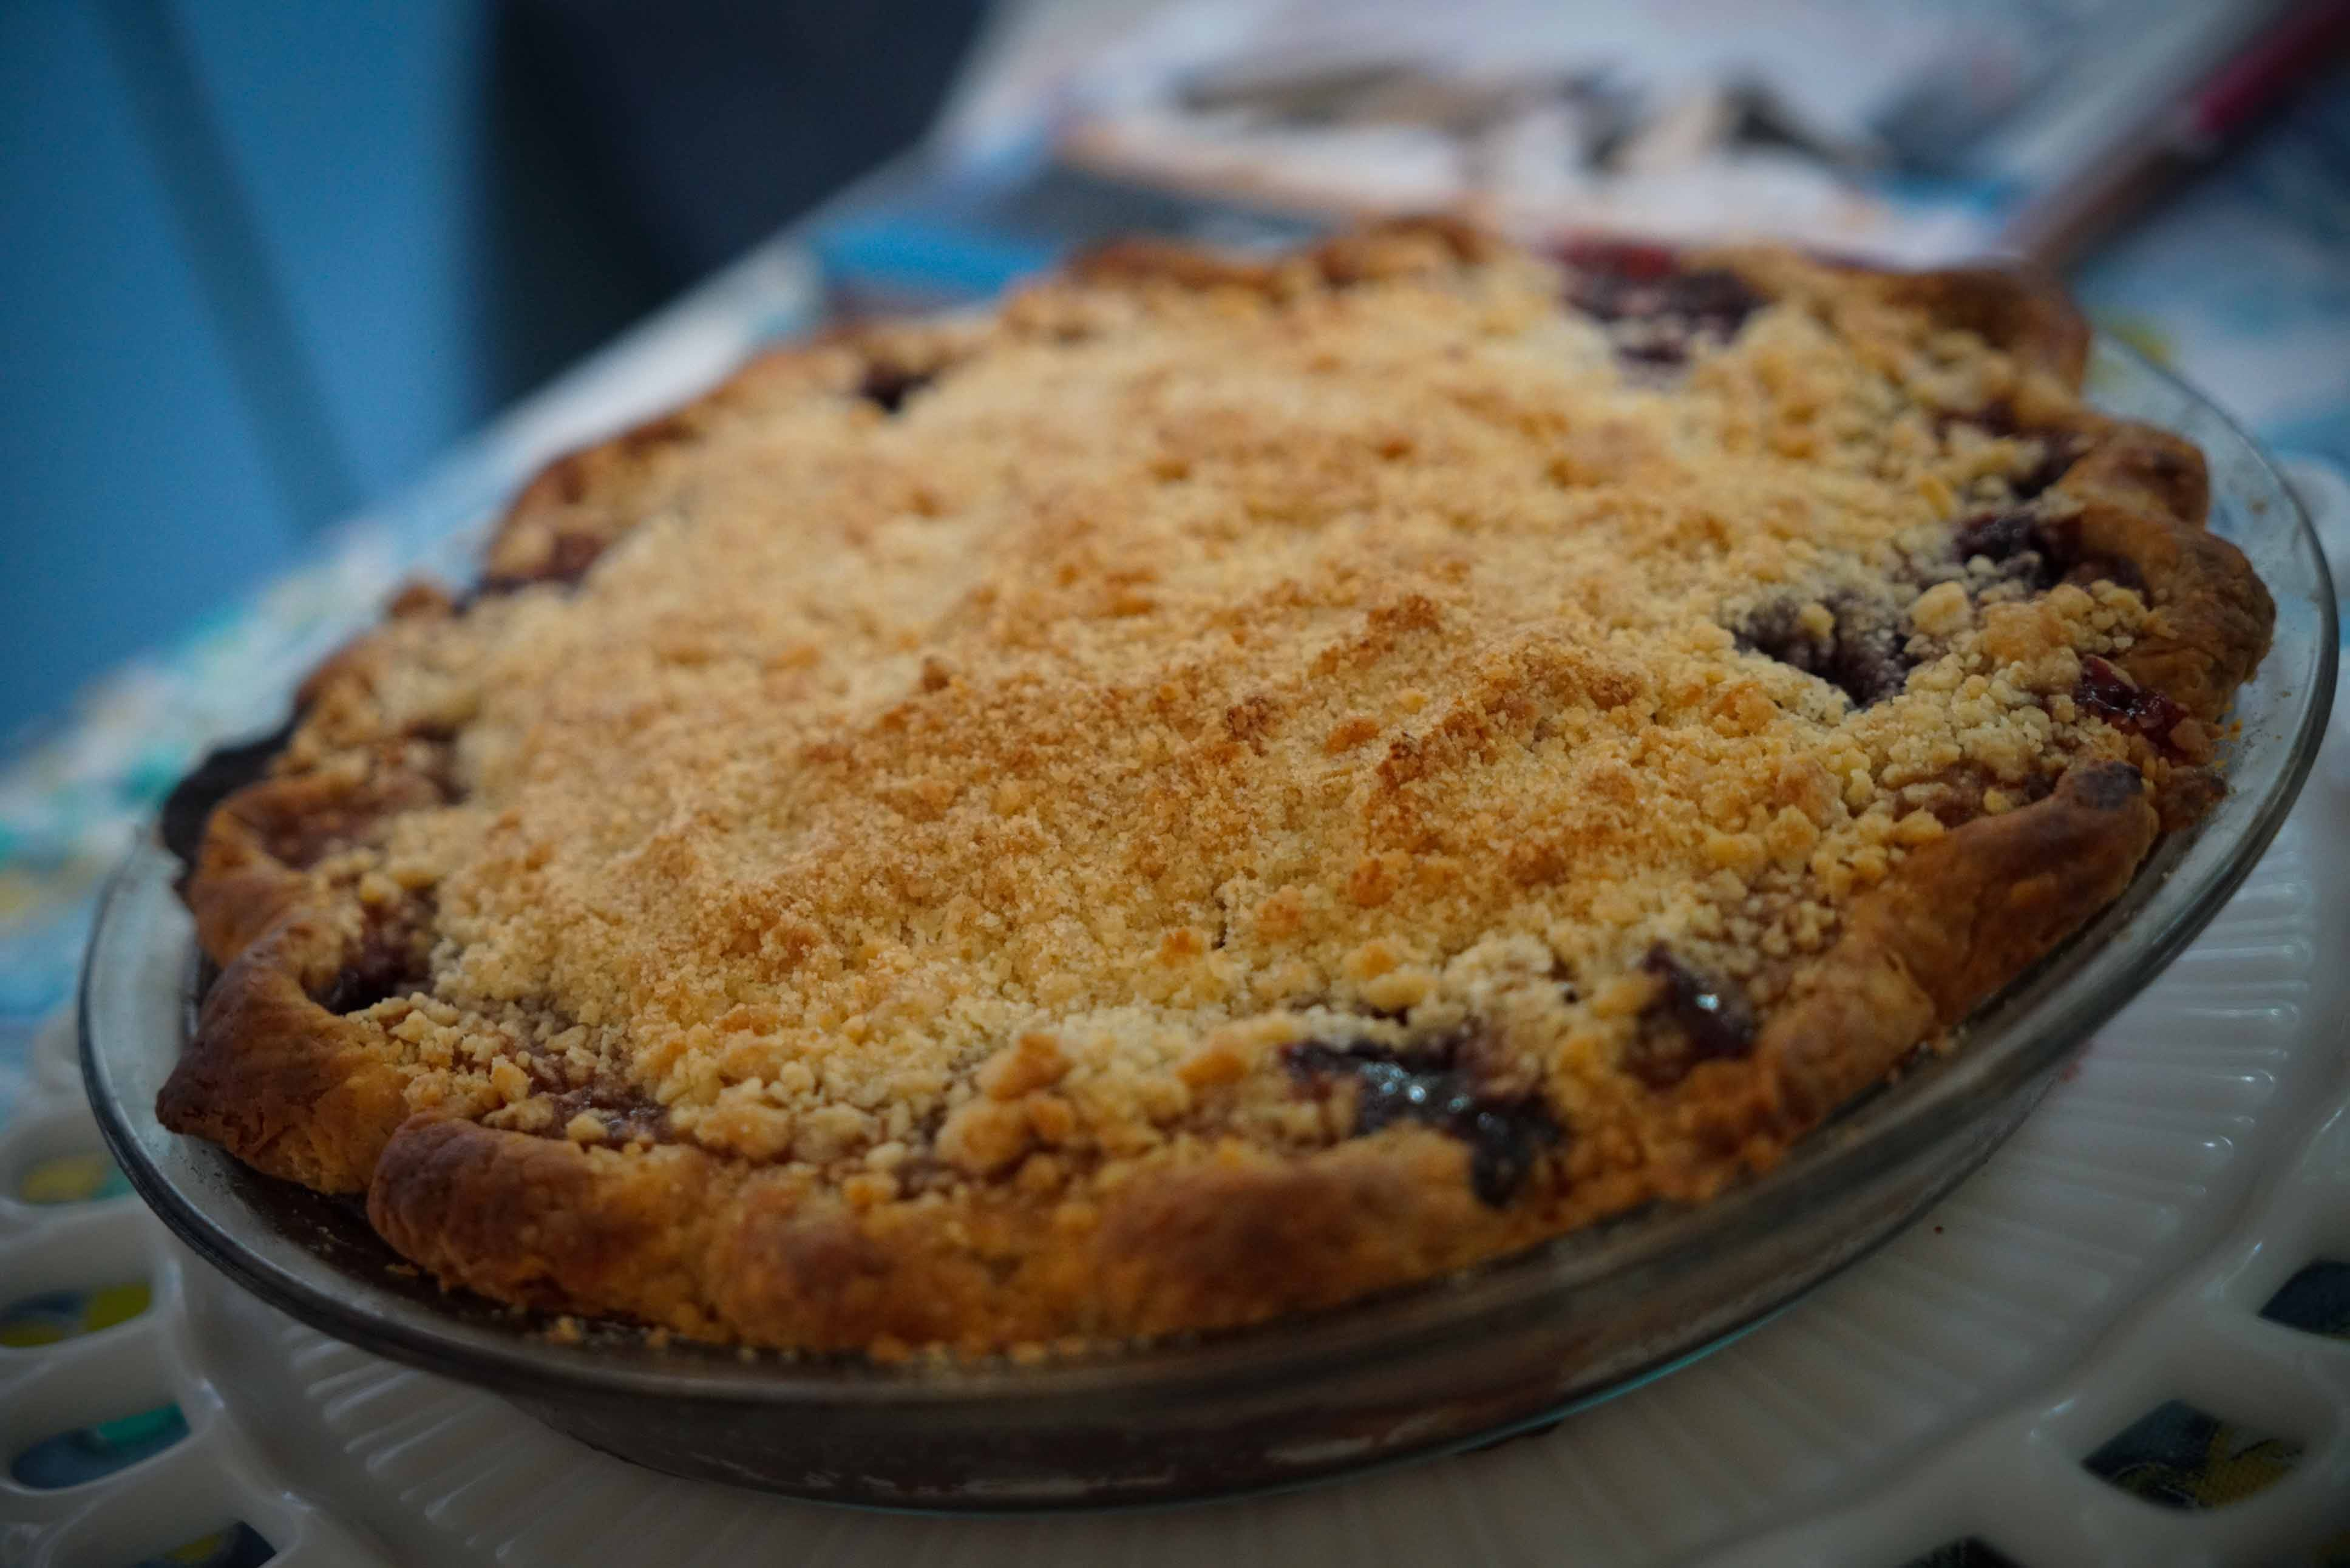 Pie maker goes for a win at Delaware State Fair